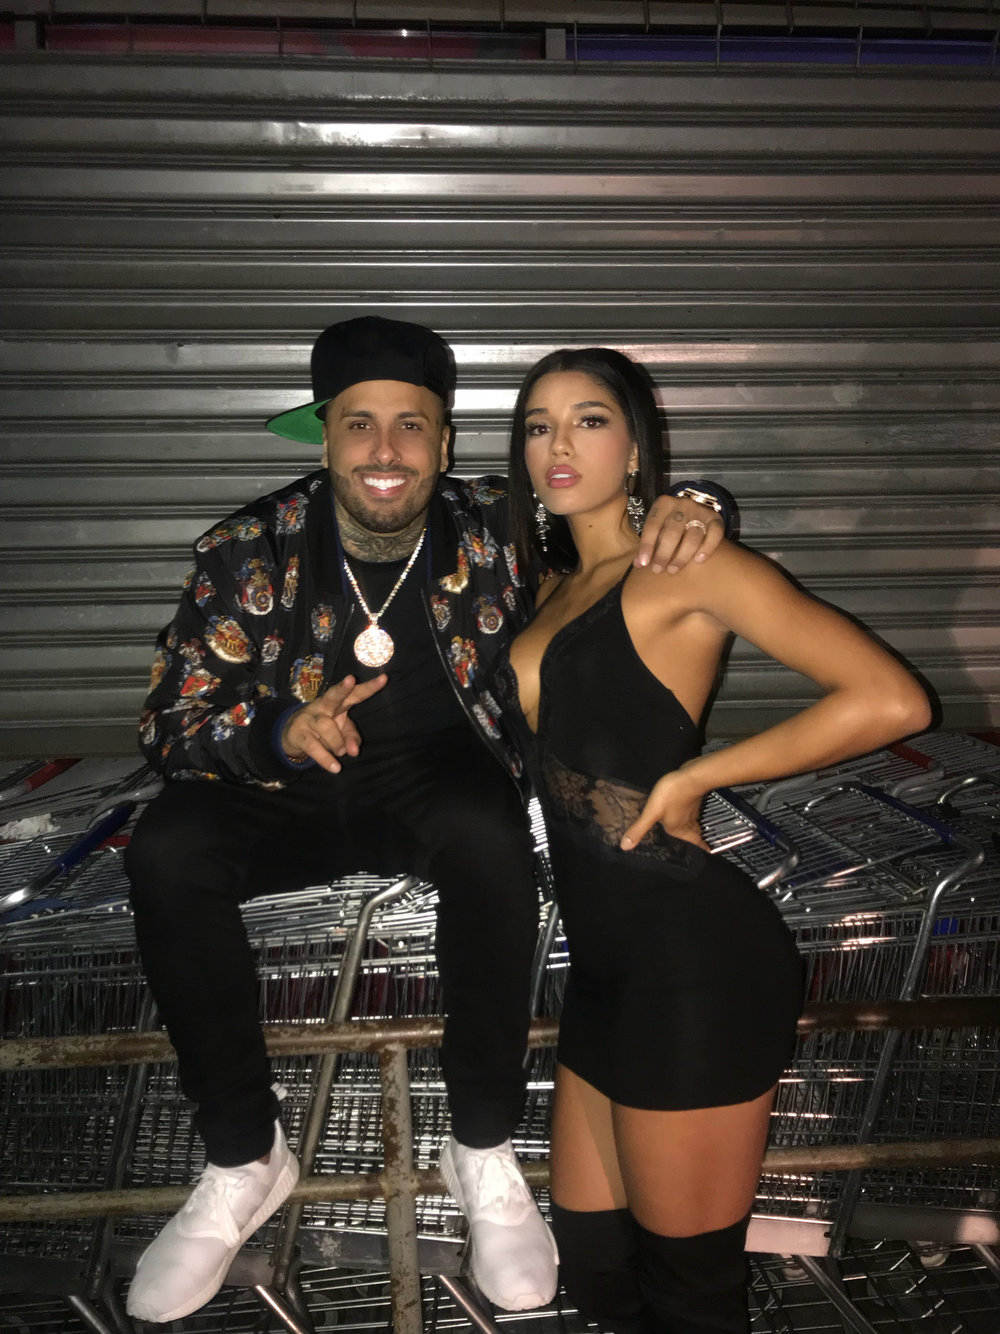 Yovanna Ventura and Nicky Jam on set of Bella y Sensual music video shot in New York City